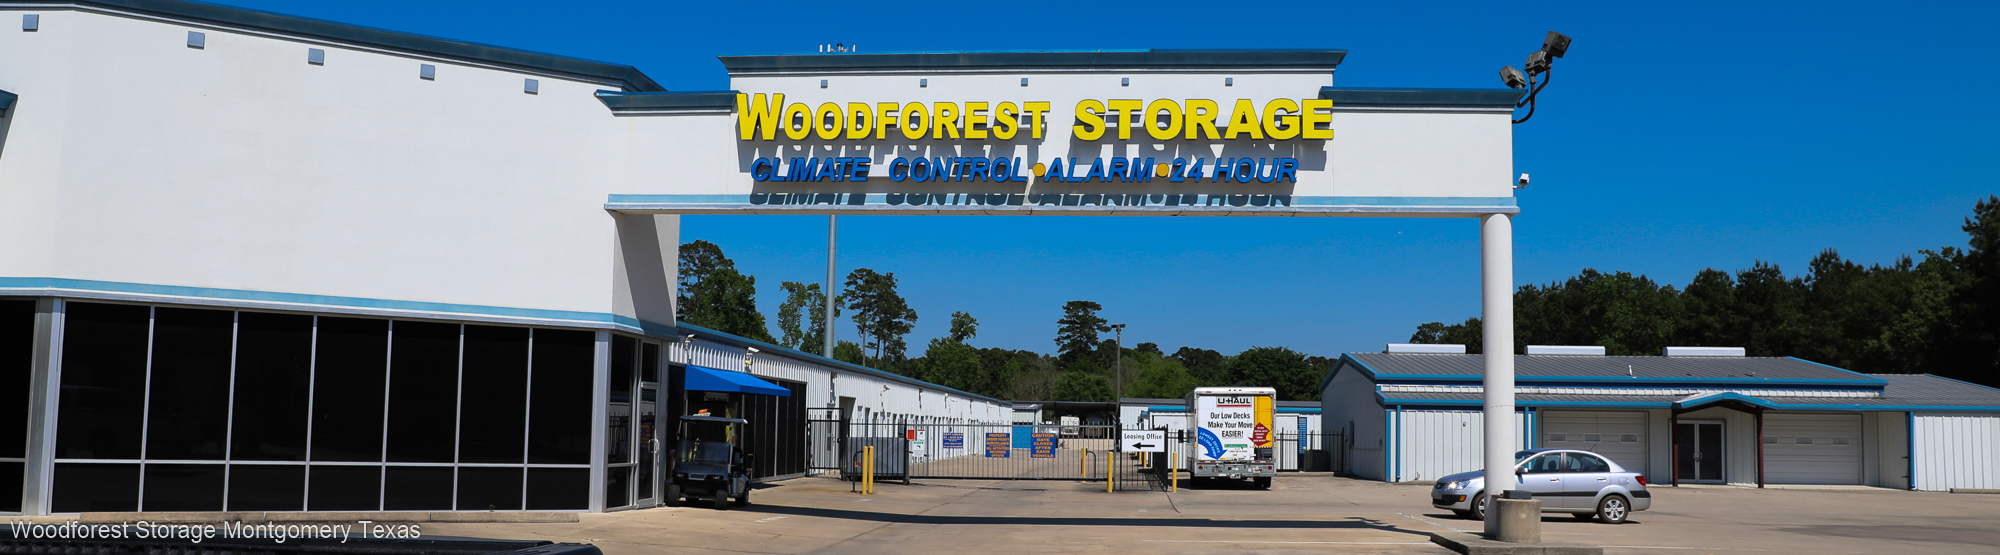 Woodforest Storage, Montgomery Texas 77316